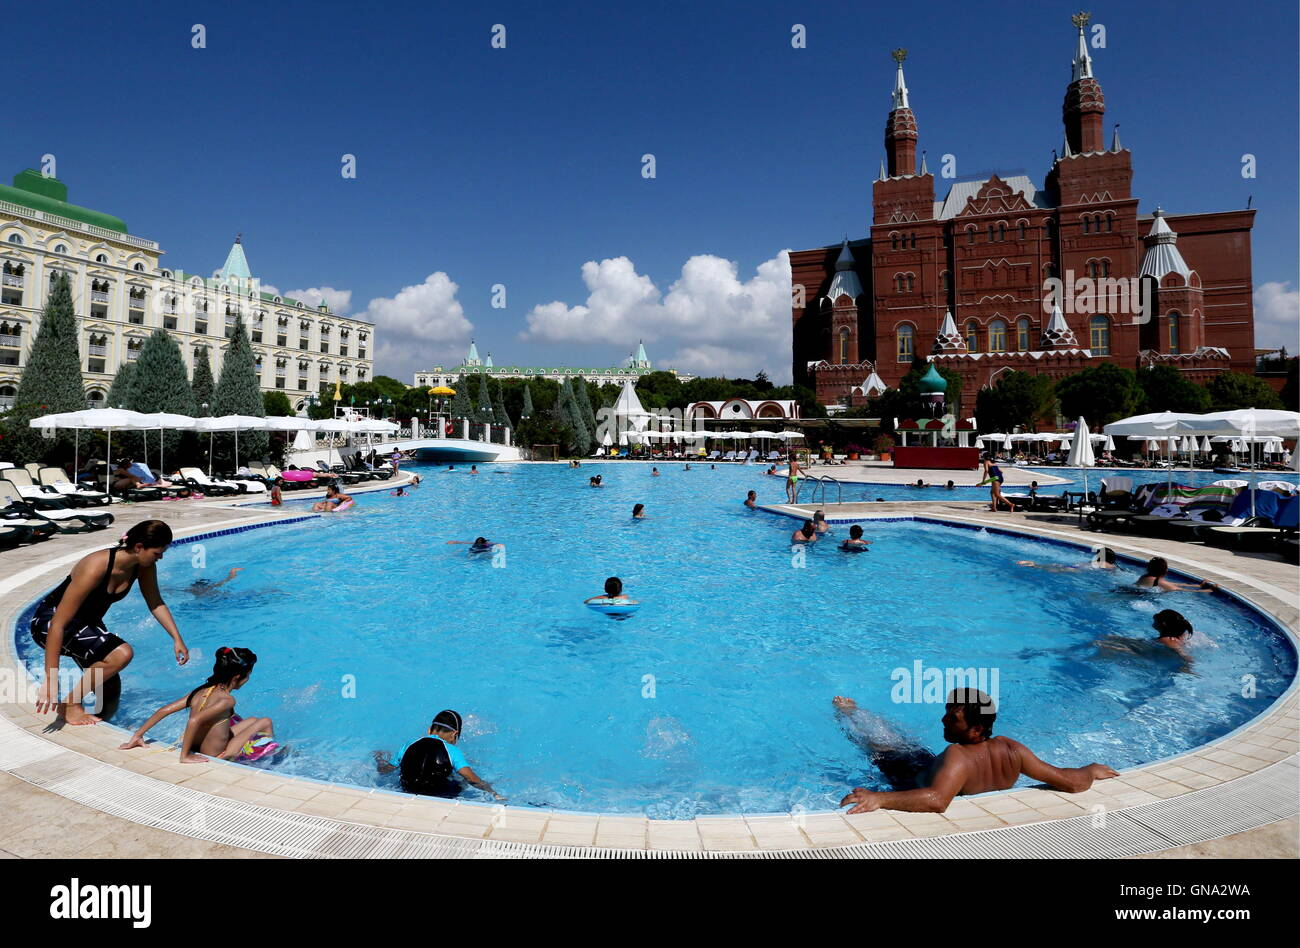 antalya turkey august 29 2016 a building resembling moscows museum of history r at the kremlin palace hotel in the mediterranean resort of antalya